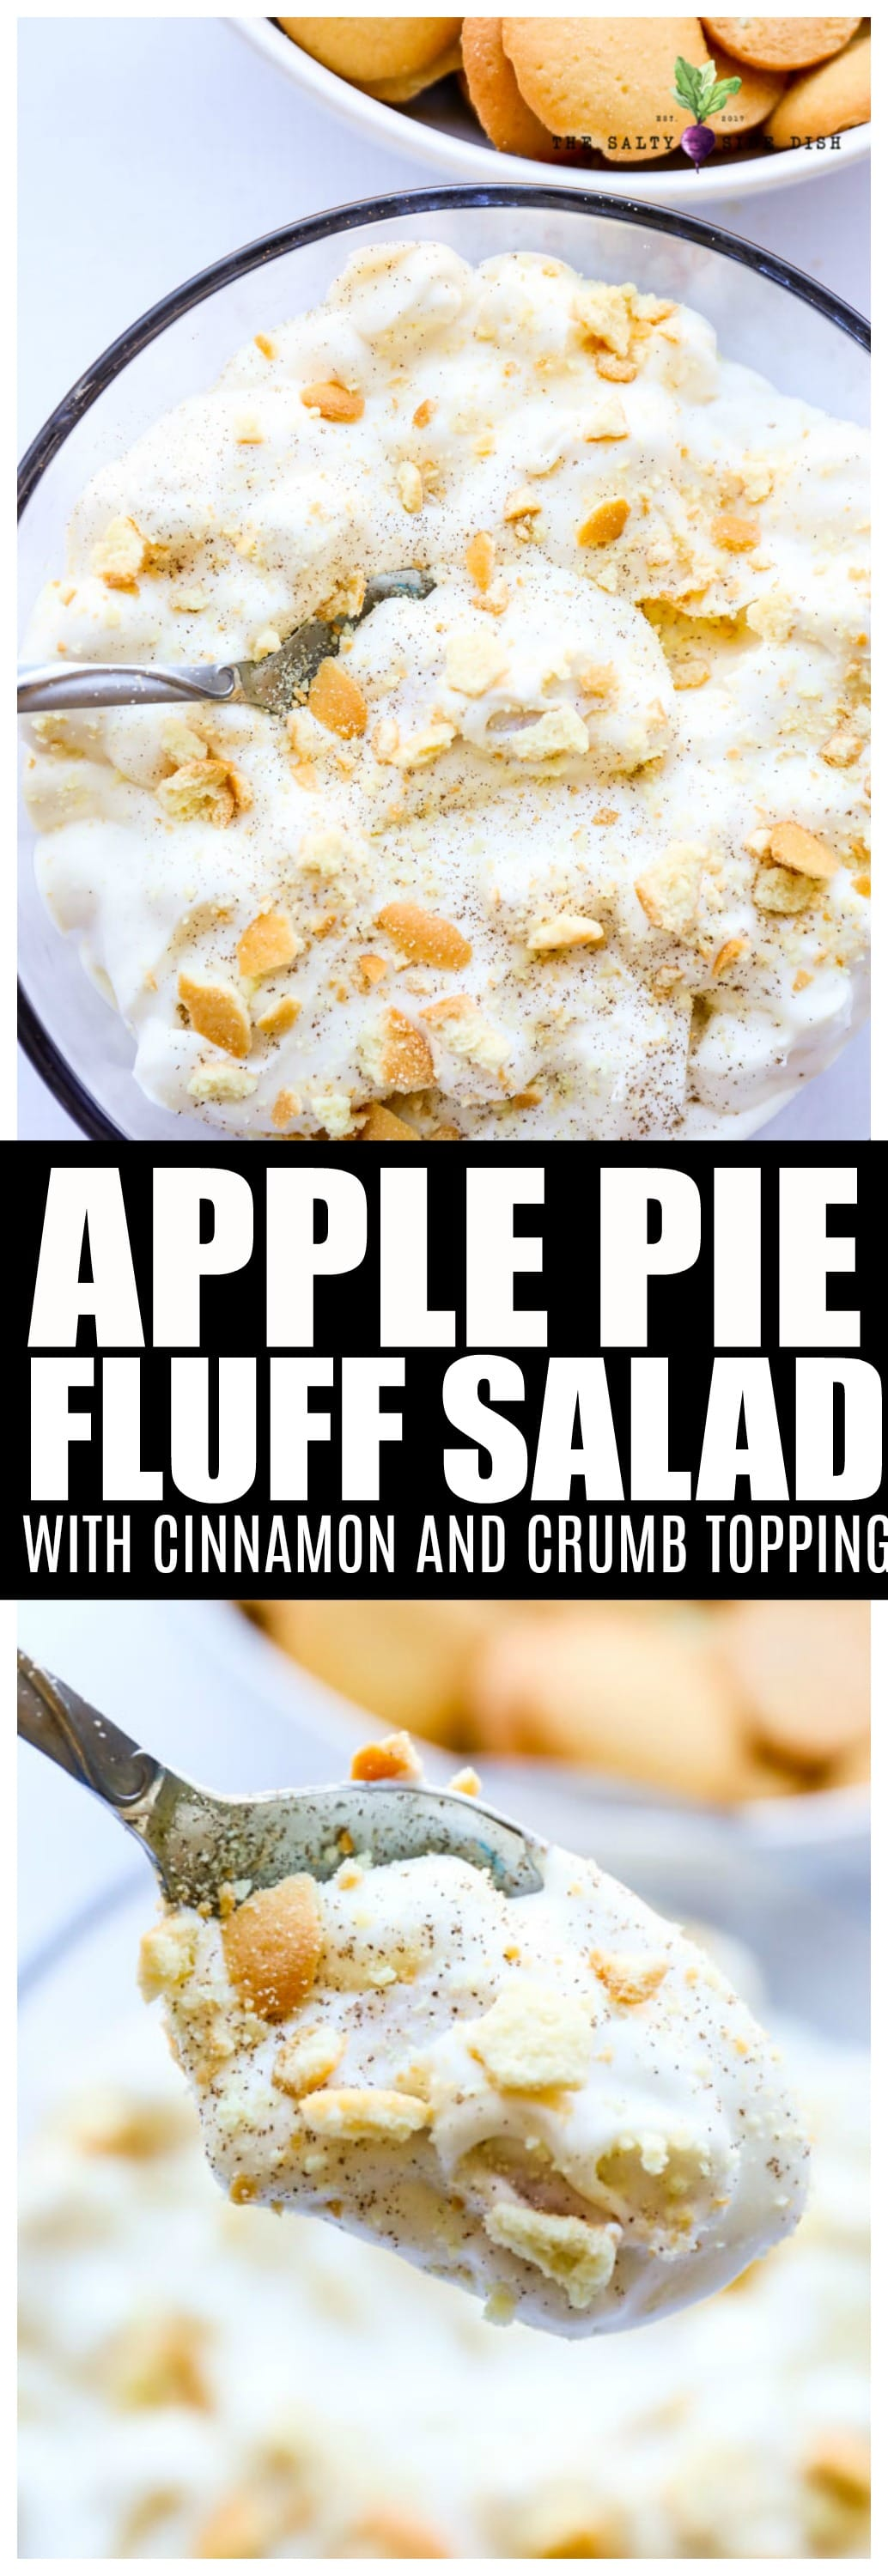 Apple Pie Fluff Salad tastes JUST LIKE Apple Pie! Move over watergate, this is your new favorite fluff #fluffsalad #applepie #dessert #salads #recipe #sidedish #saltysidedish